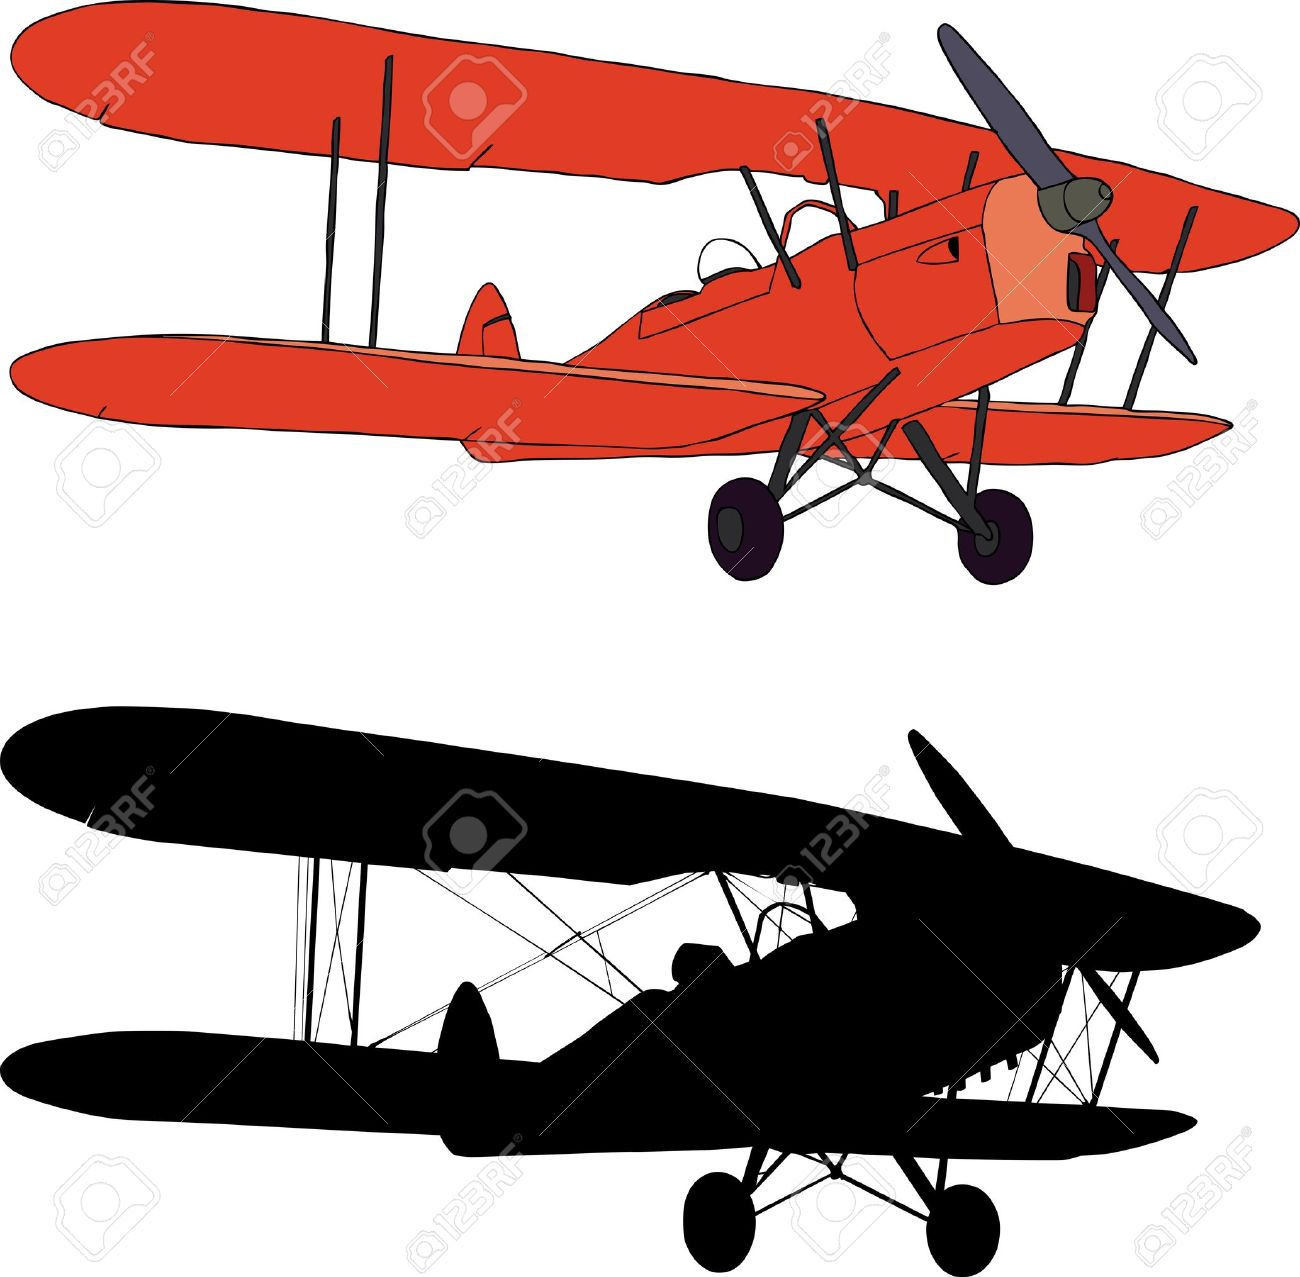 illustration and silhouette of an old biplane royalty free rh 123rf com Red Bi Plane Clip Art Free biplane clipart royalty free